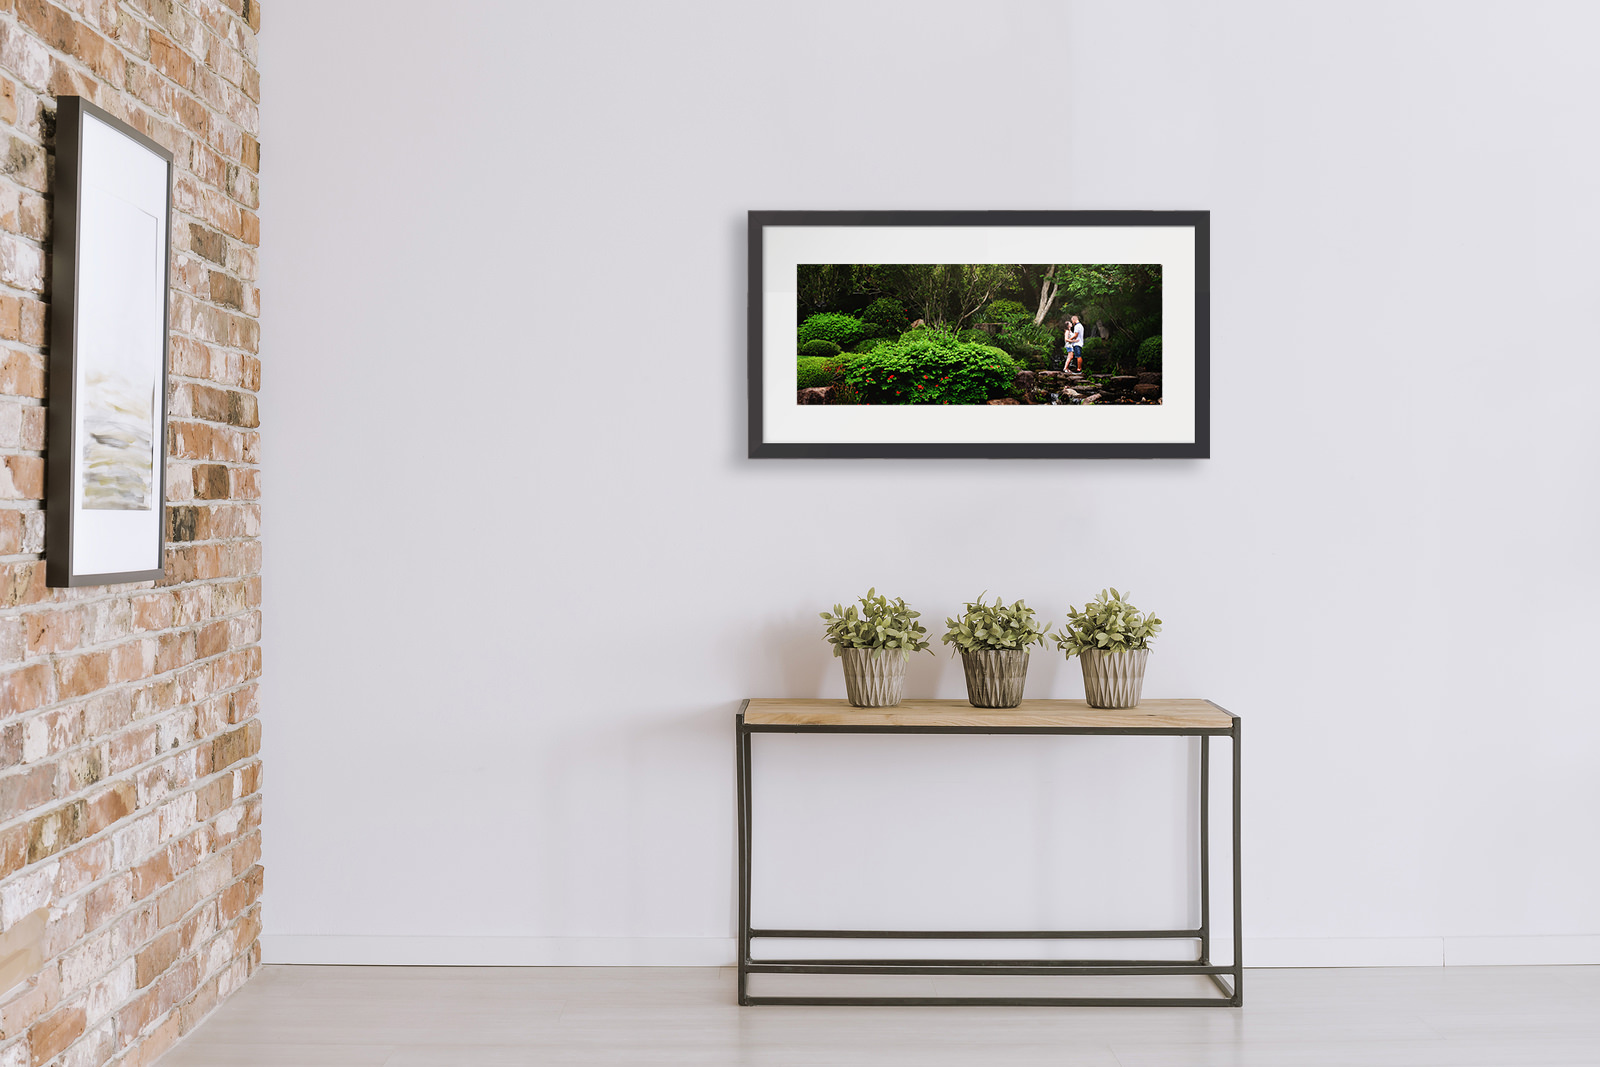 Framed print of engaged couple in garden shown above a hall table